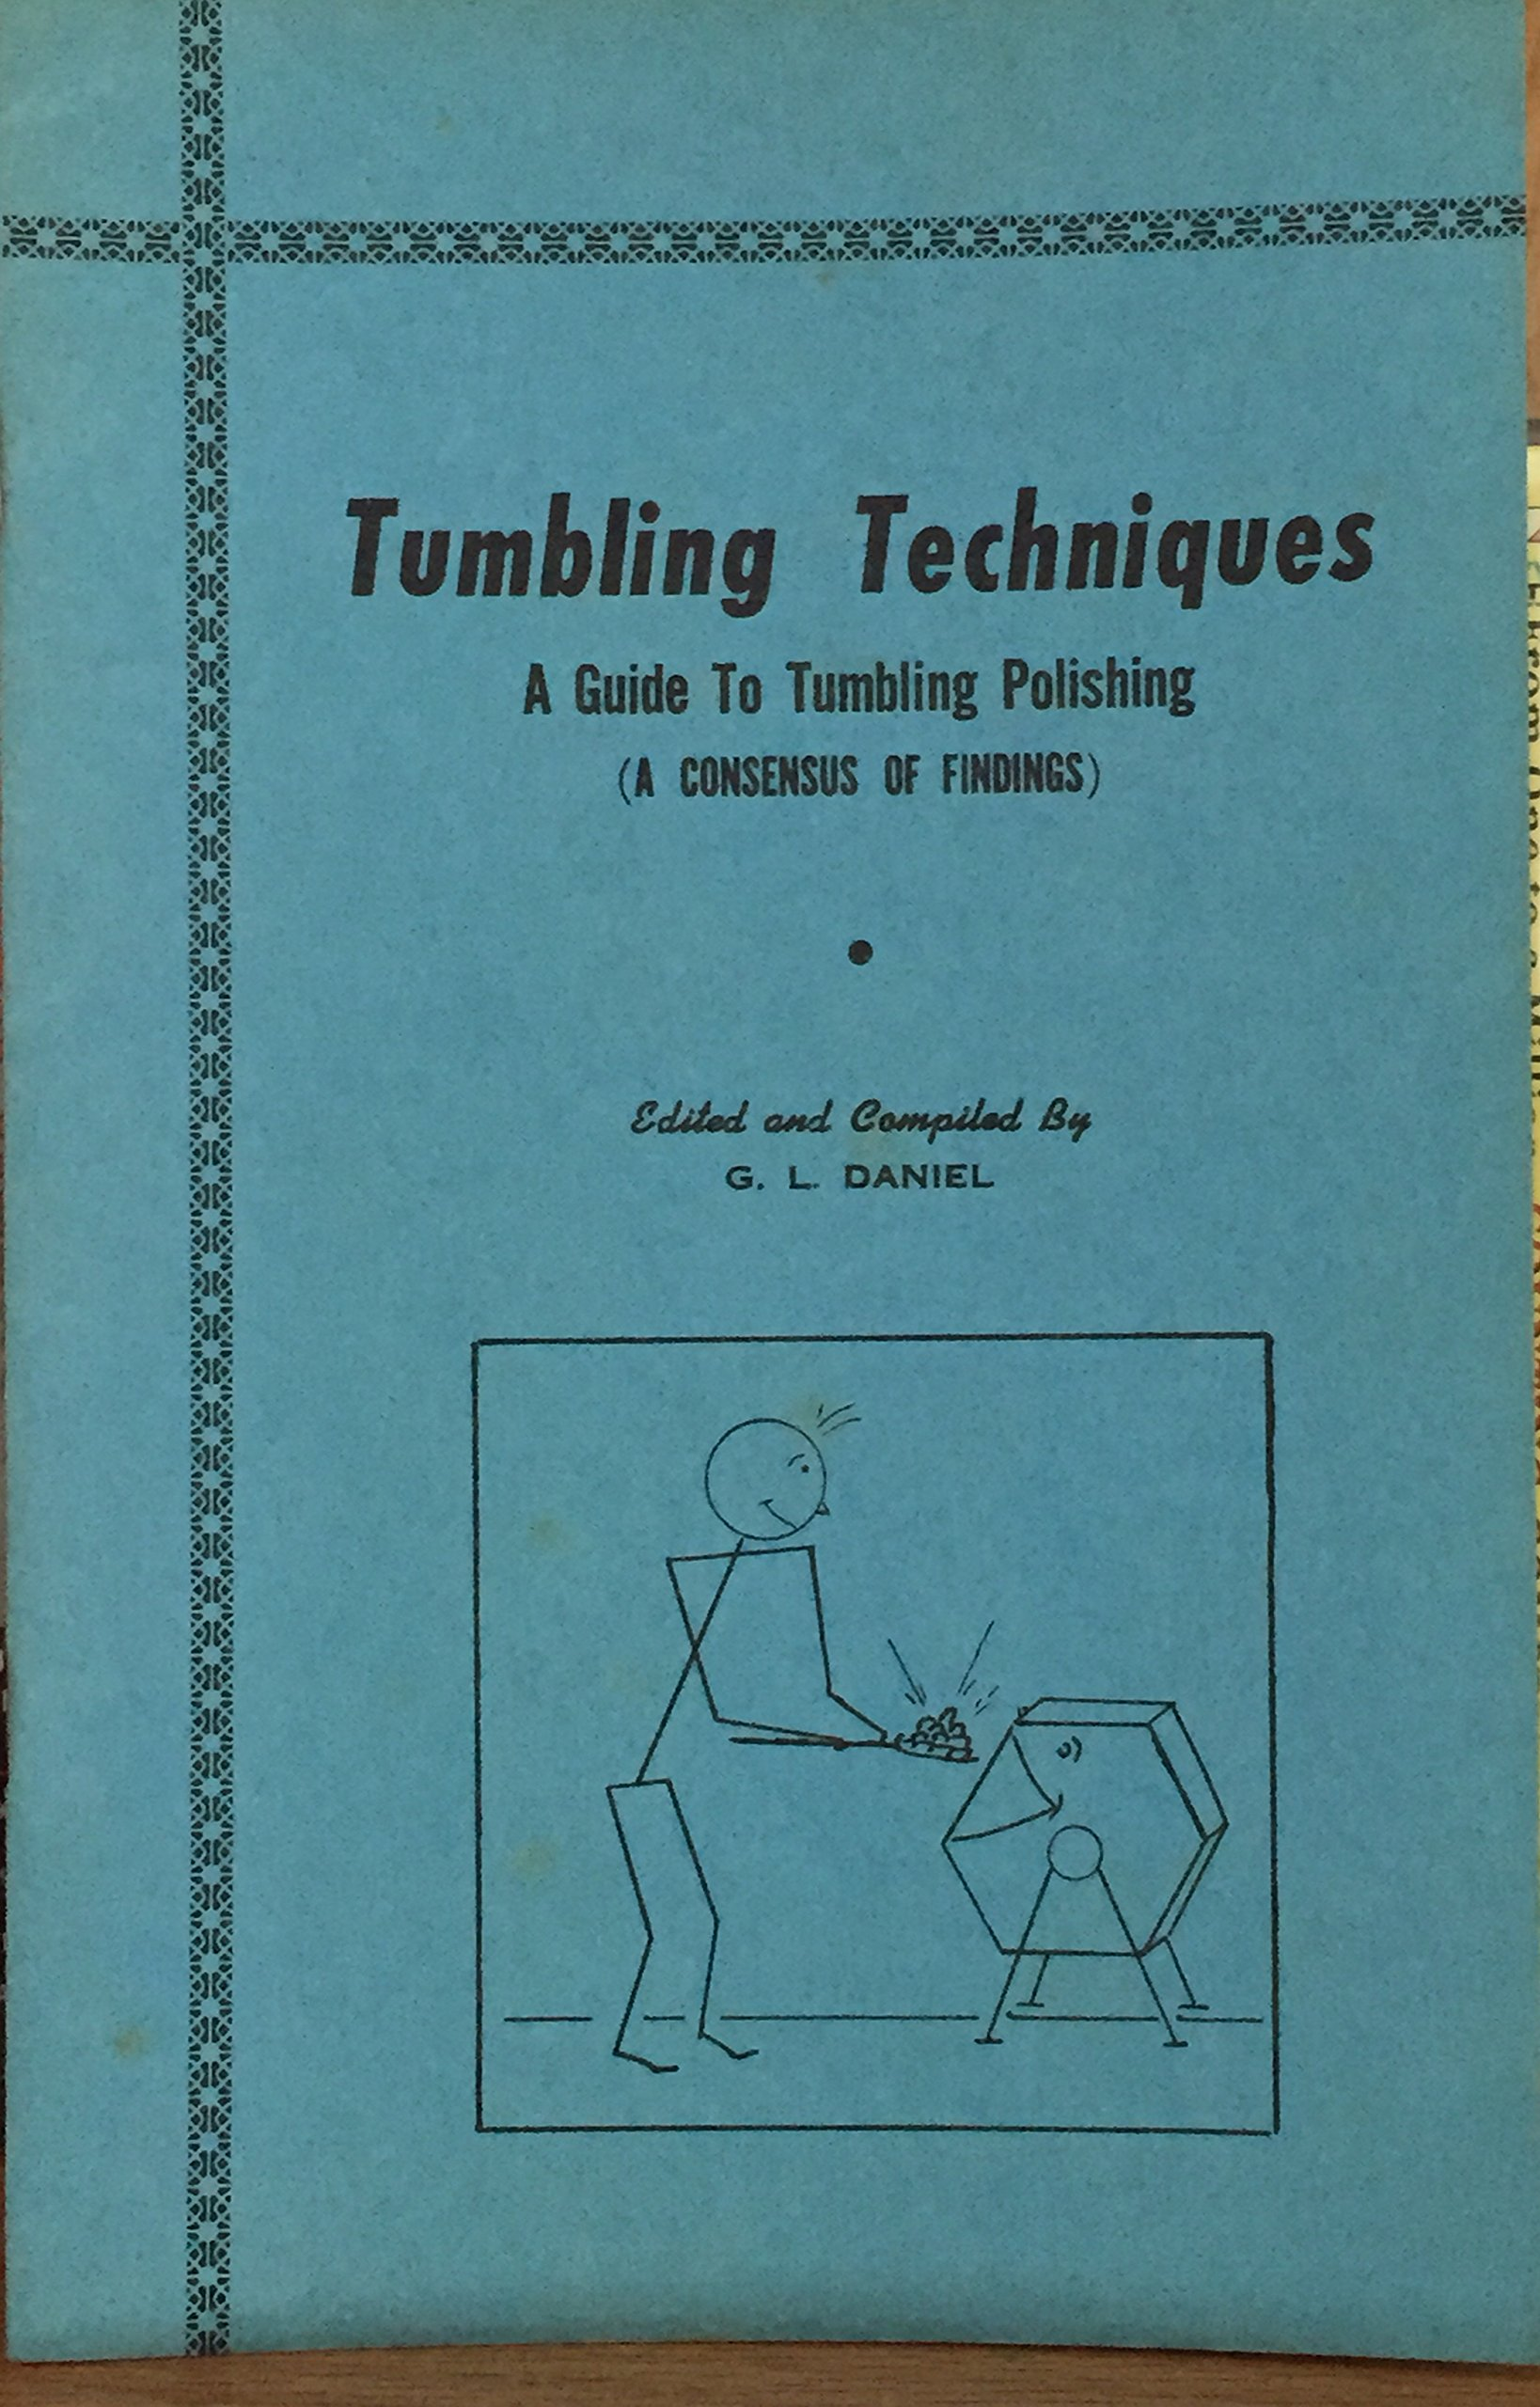 Tumbling Techniques : A Guide to Tumbling Polishing (A Consensus of Findings)